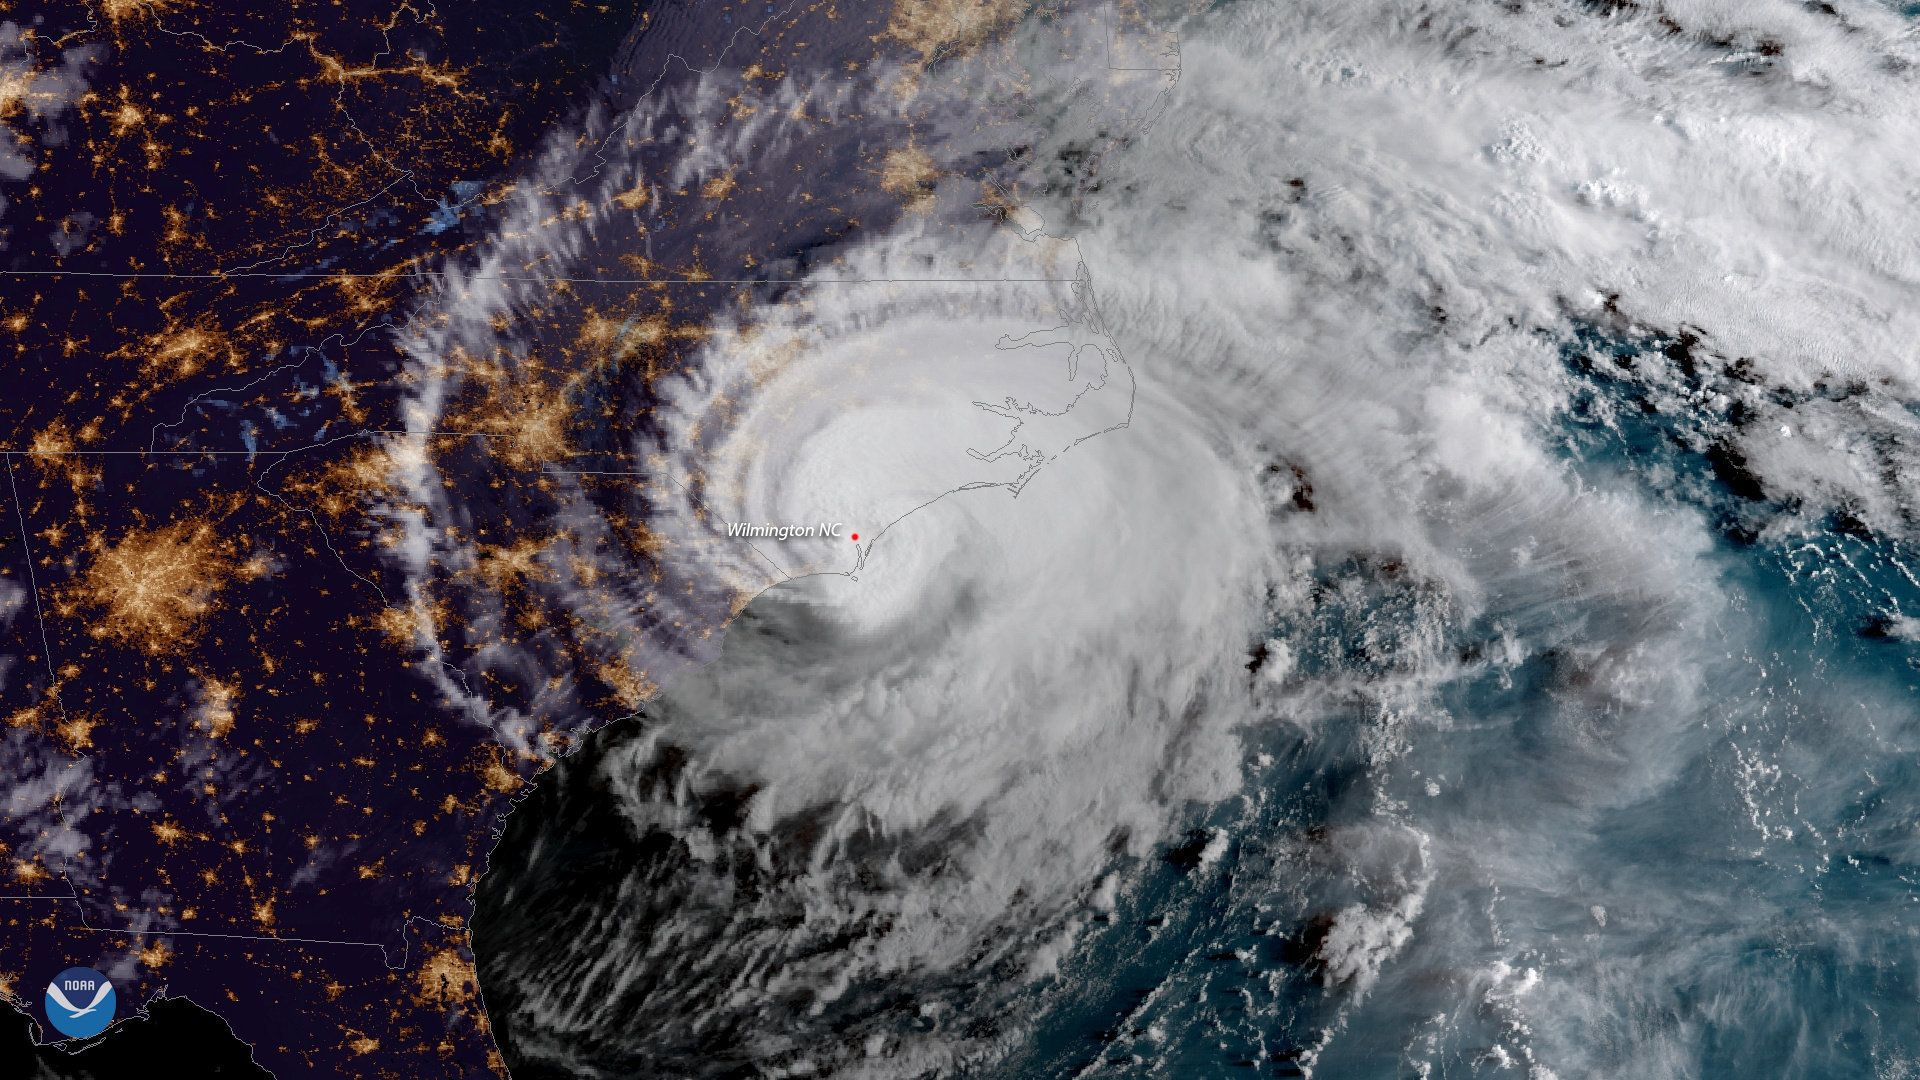 Hurricane Florence is shown from a National Oceanic and Atmospheric Administration (NOAA) #GOESEast satellite shortly after the storm made landfall near Wrightsville Beach, North Carolina, U.S., September 14, 2018.  NOAA/Handout via REUTERS   ATTENTION EDITORS - THIS IMAGE WAS PROVIDED BY A THIRD PARTY